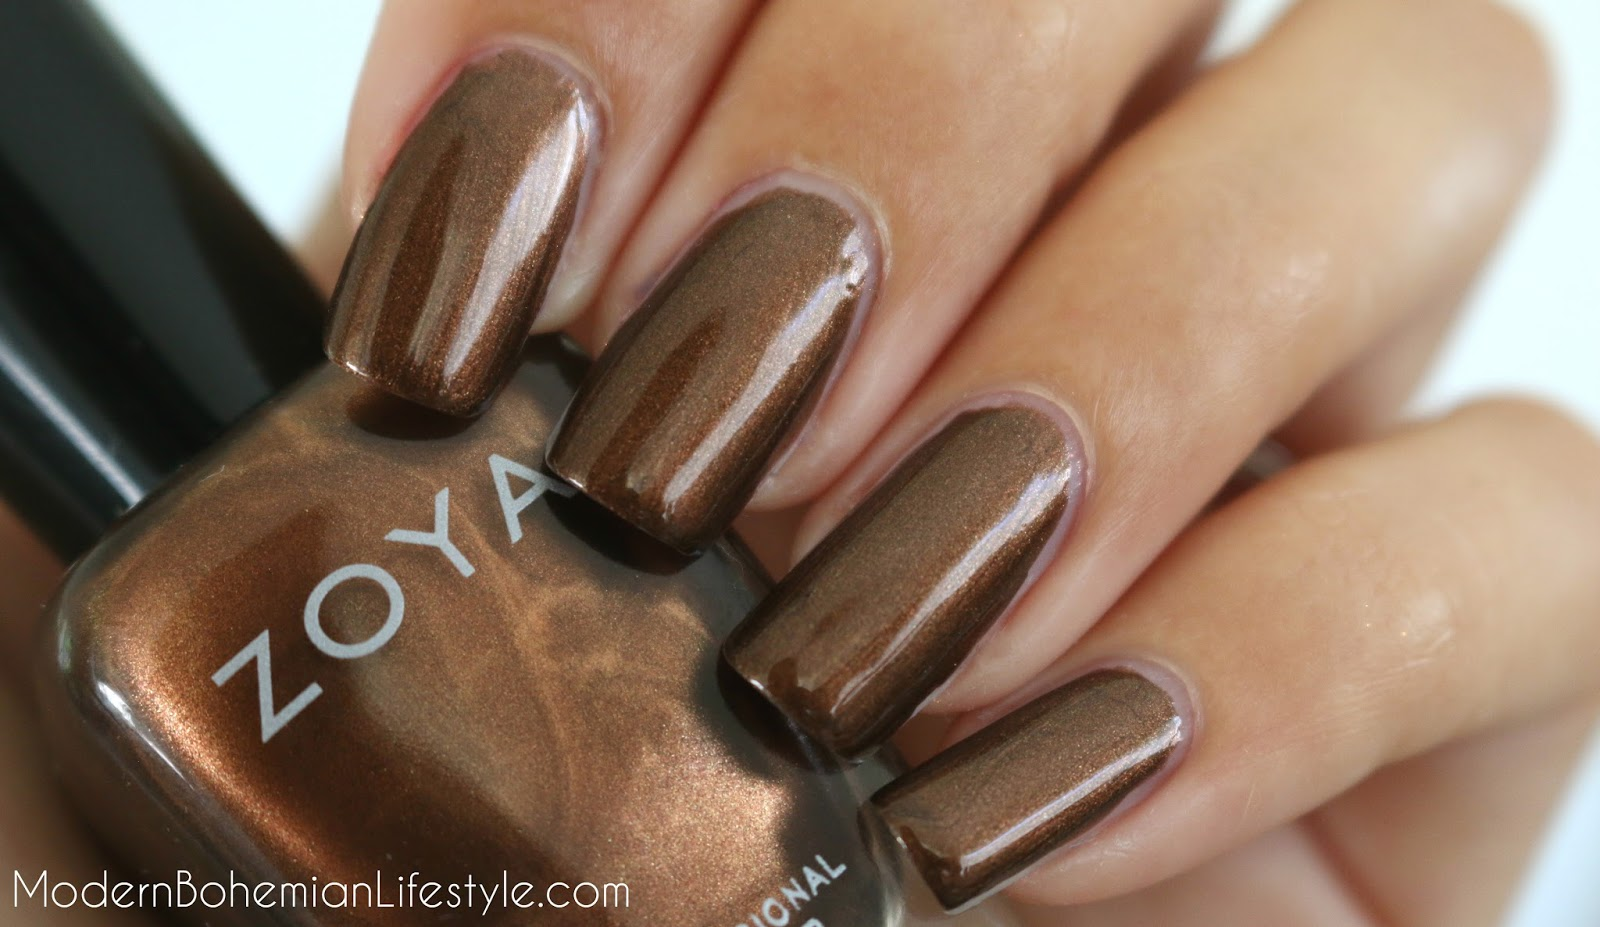 Modern Bohemian Lifestyle: Zoya Focus & Flair Fall 2015